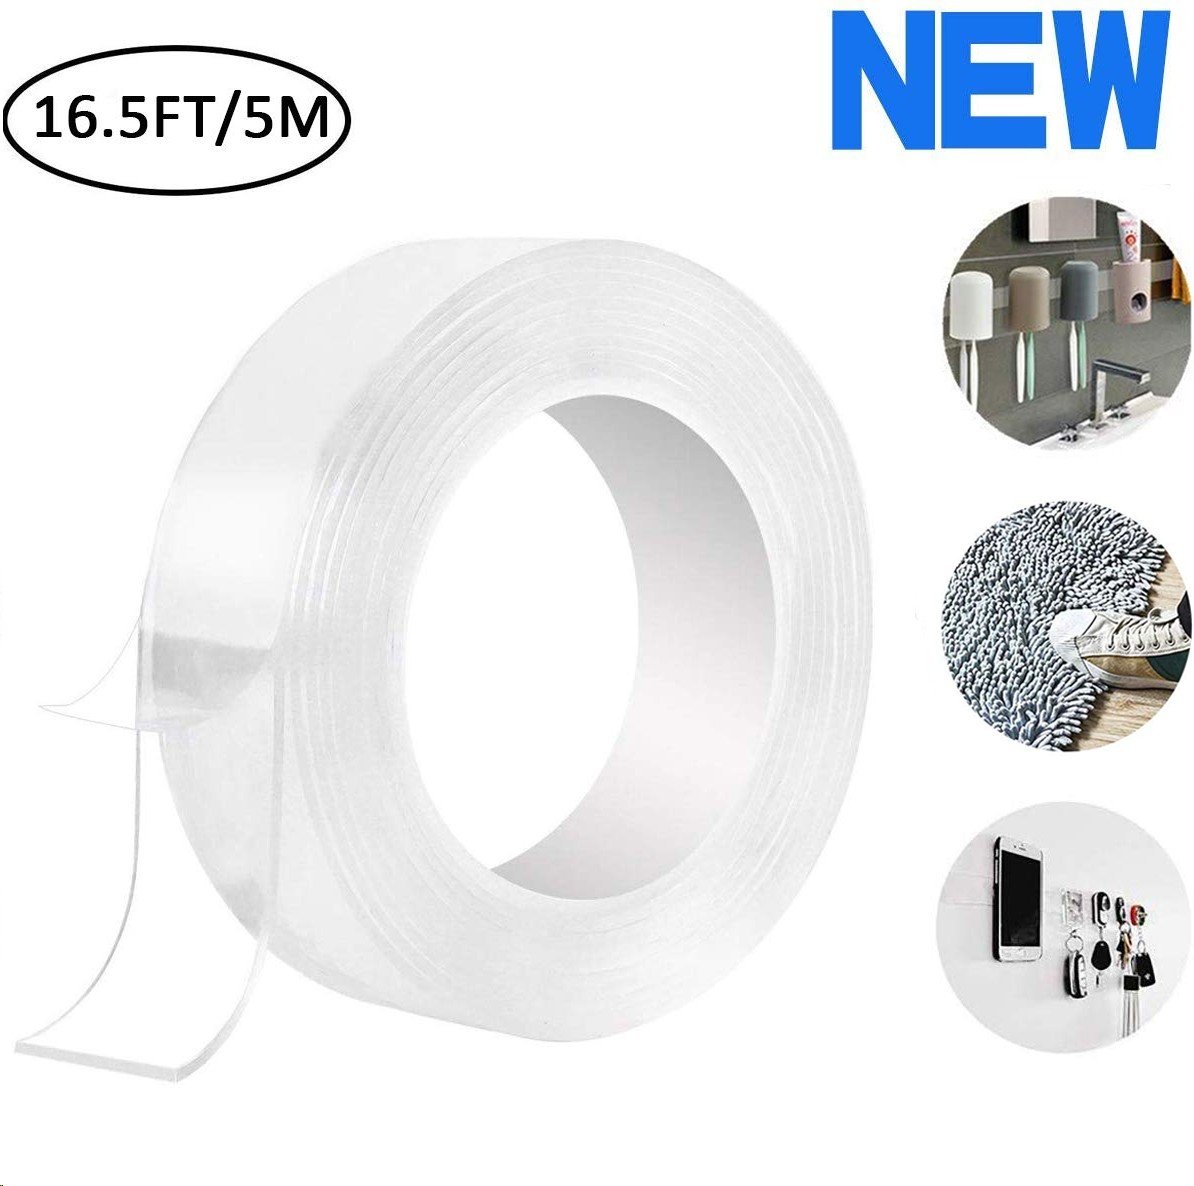 The Reusable Adhesive Silicone Tape Anti-Slip Double Sided Sticky Strips Double Sided Carpet Tape A-5m